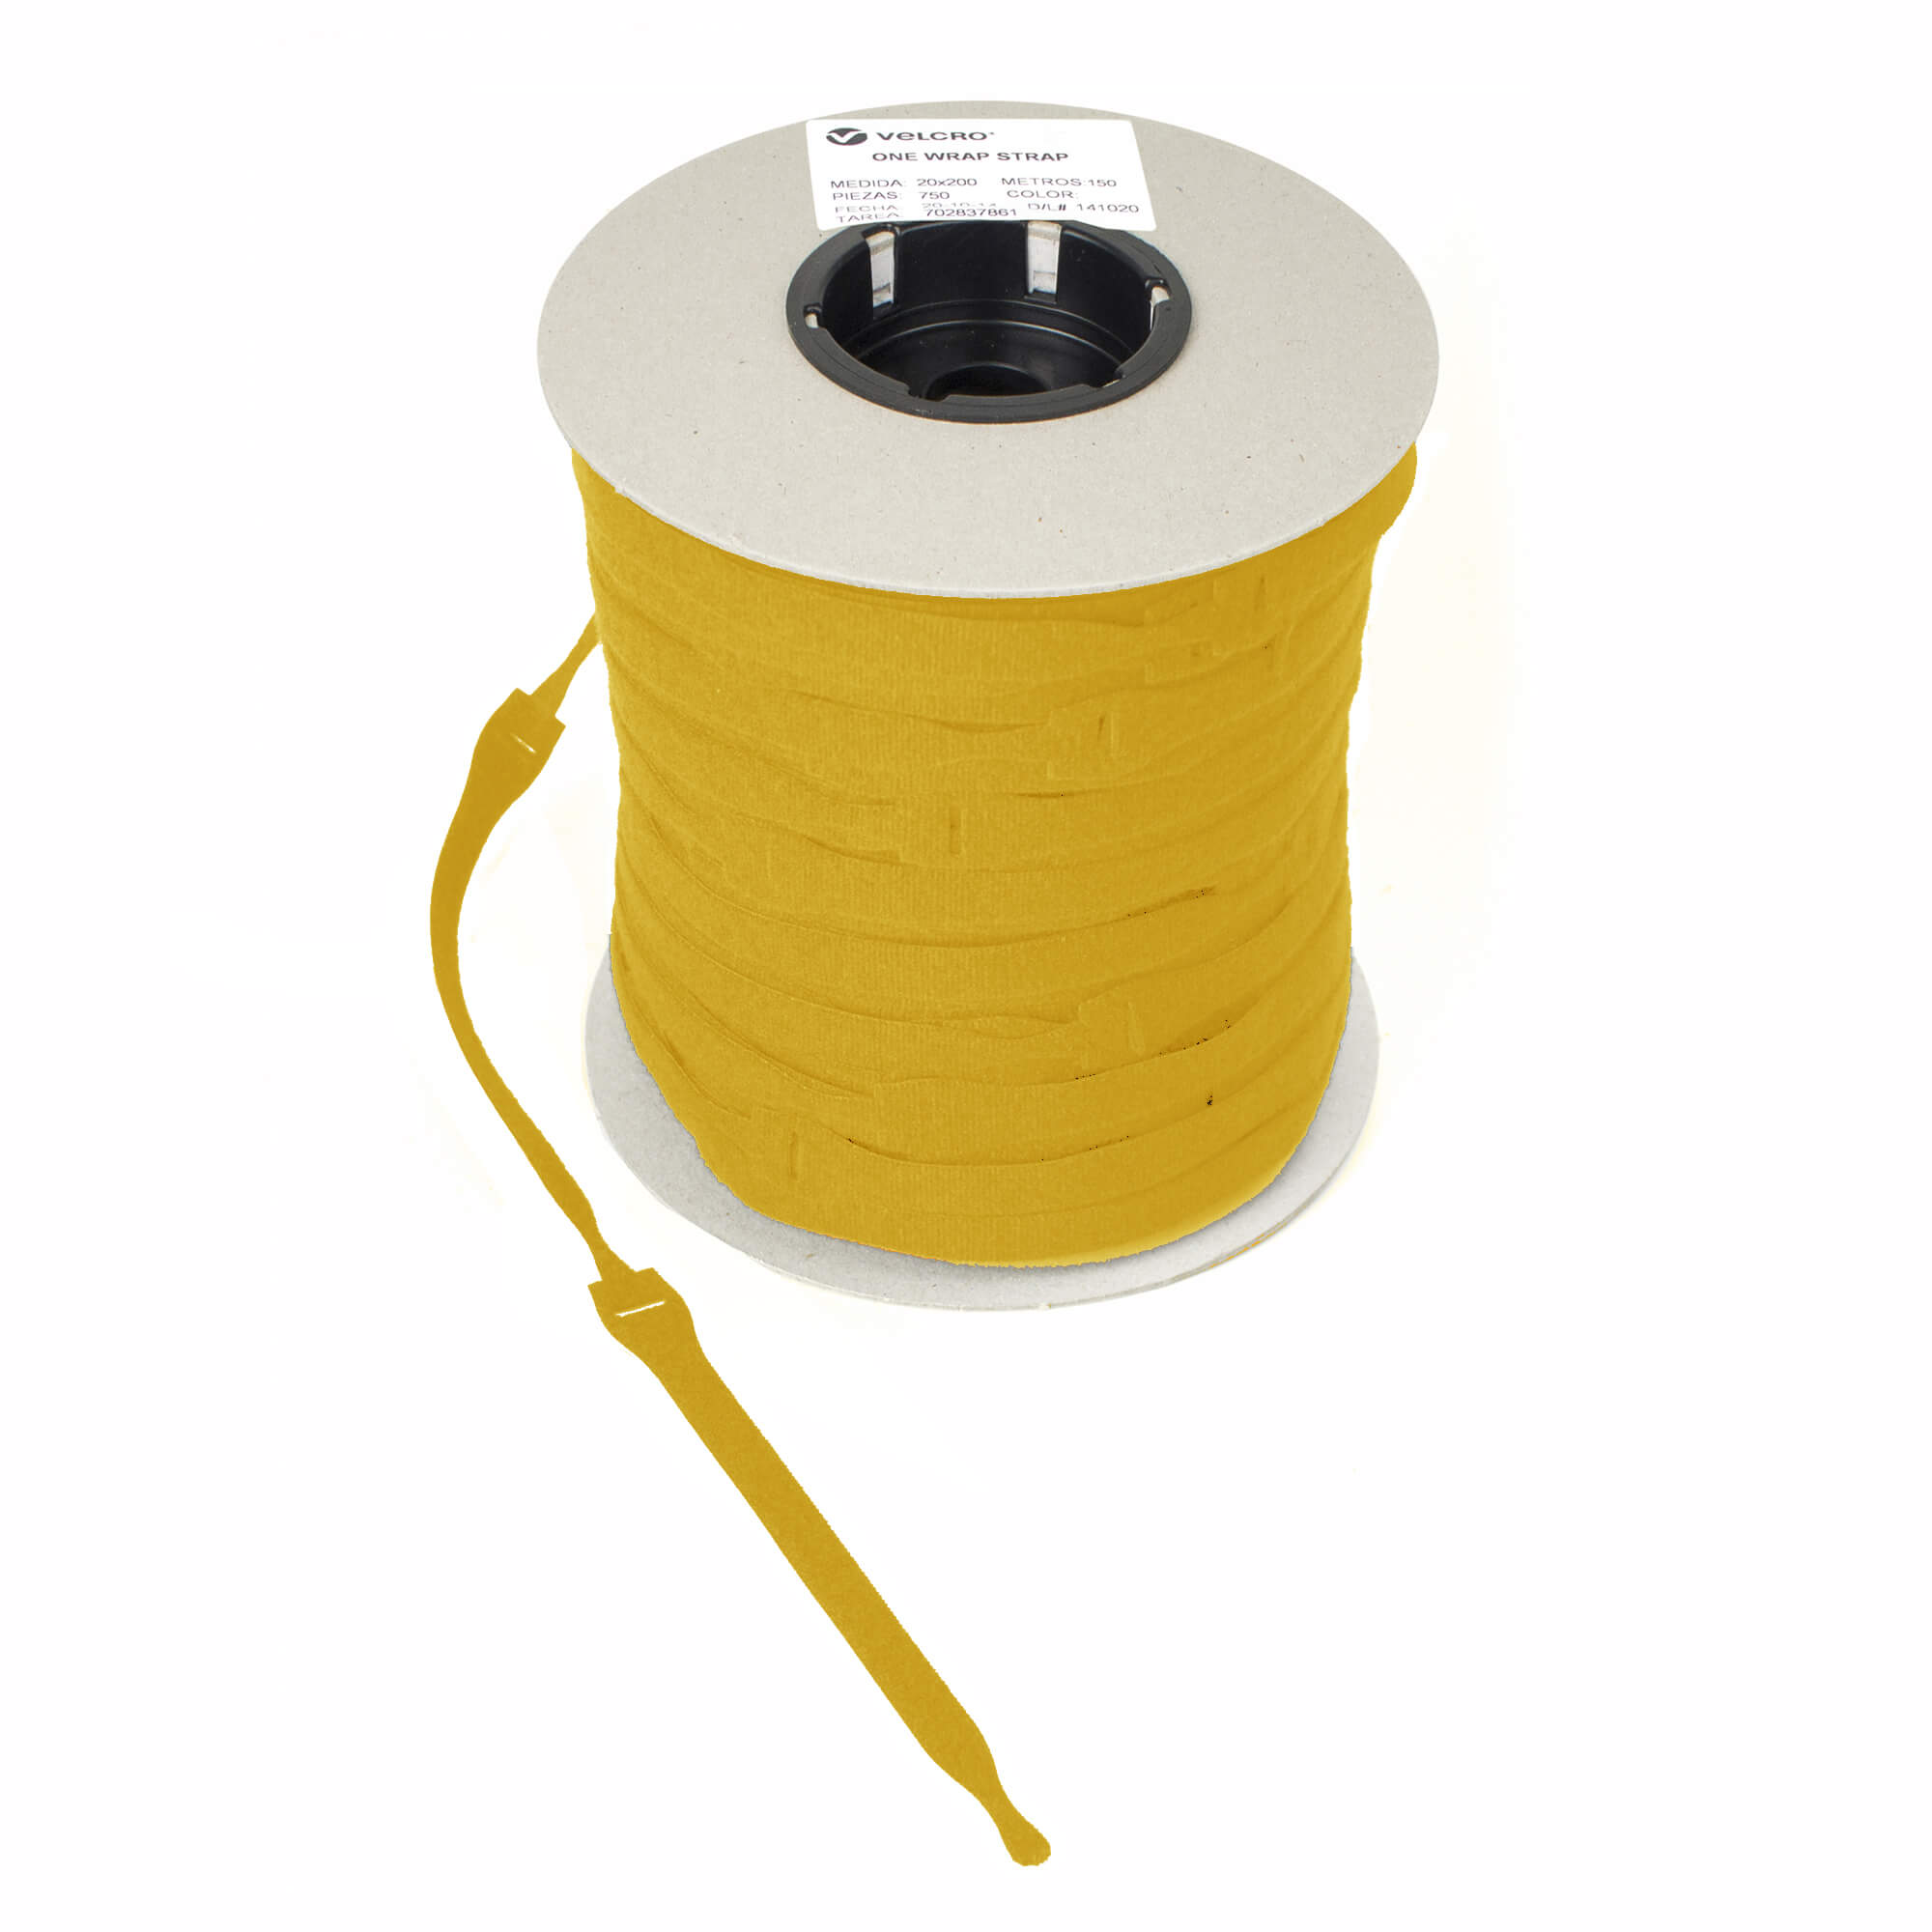 VELCRO brand Hook /& loop back to back strapping ONE-WRAP 13mm  x 1 metre orange